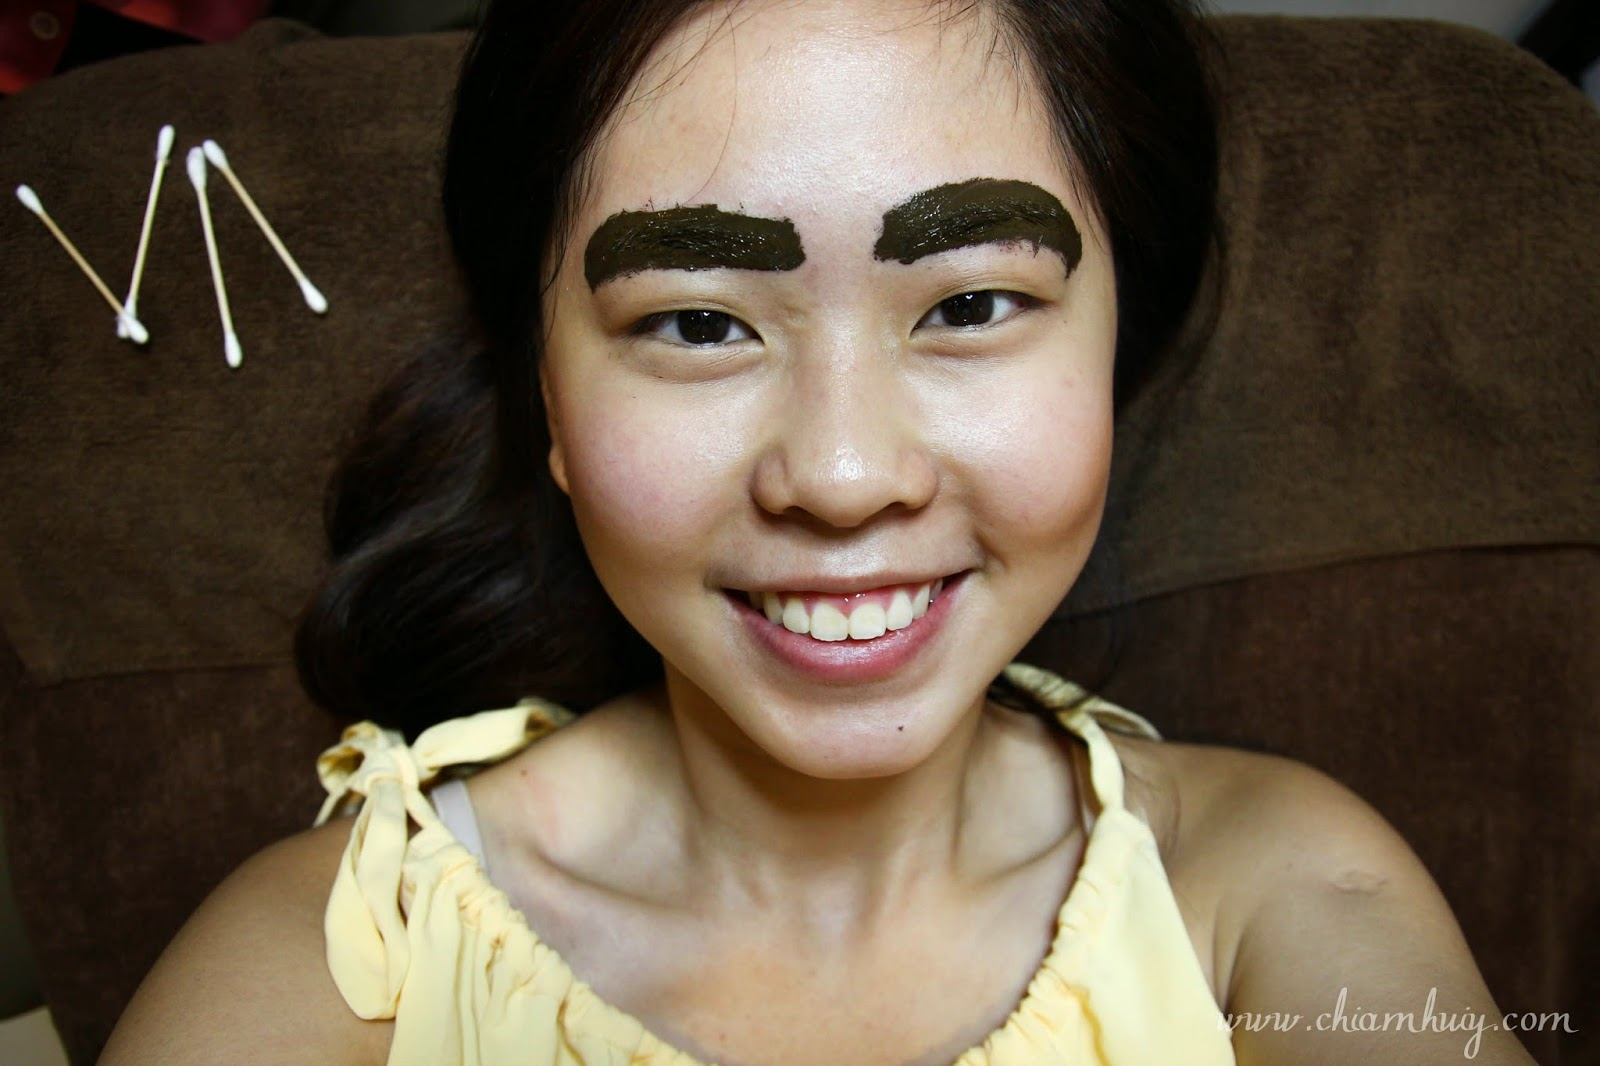 Eyebrow embroidery new technique in singapore highbrow for 1 salon eyebrow embroidery